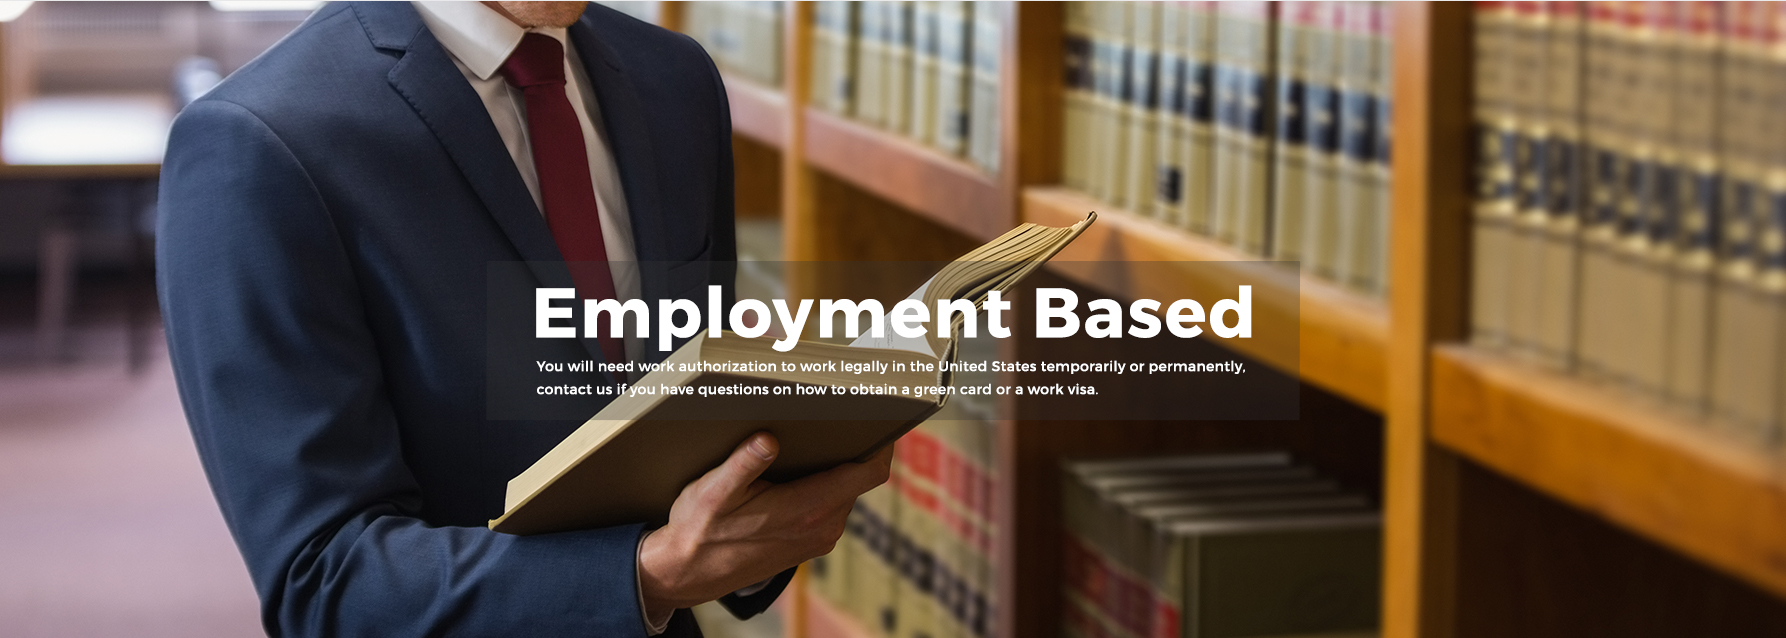 Employment Based - Xie Law Office